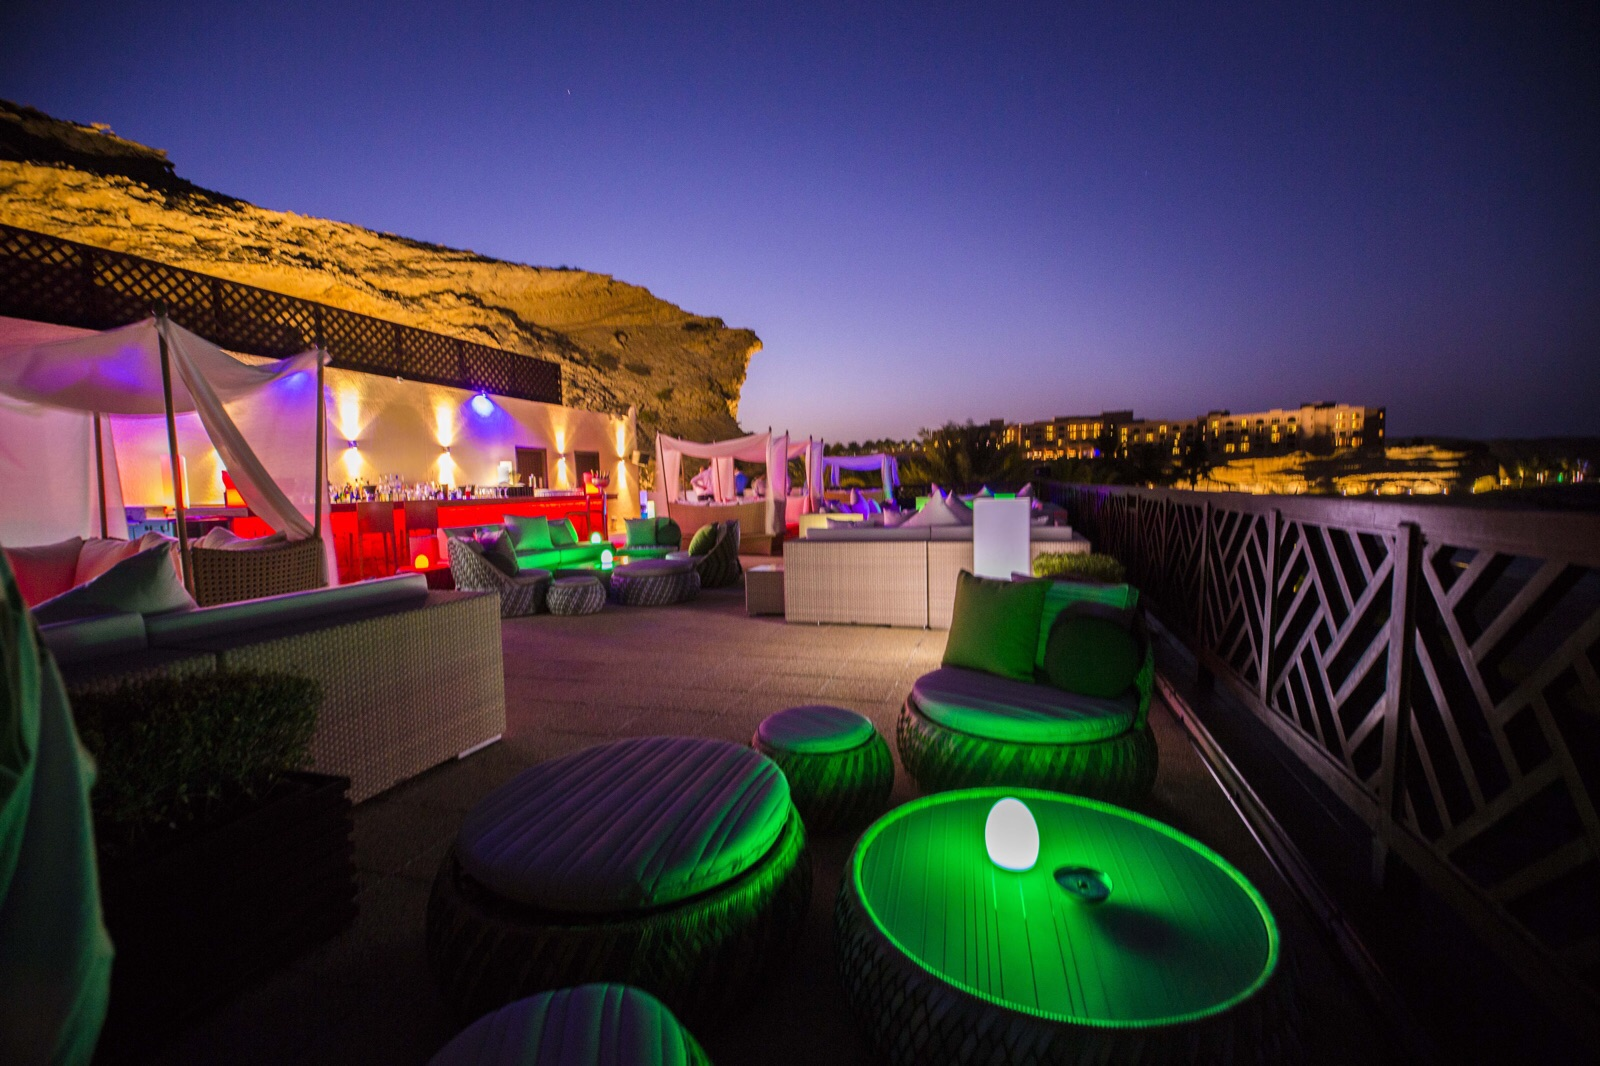 B A B Lounge Re Opens This Weekend MM Muscat Mutterings